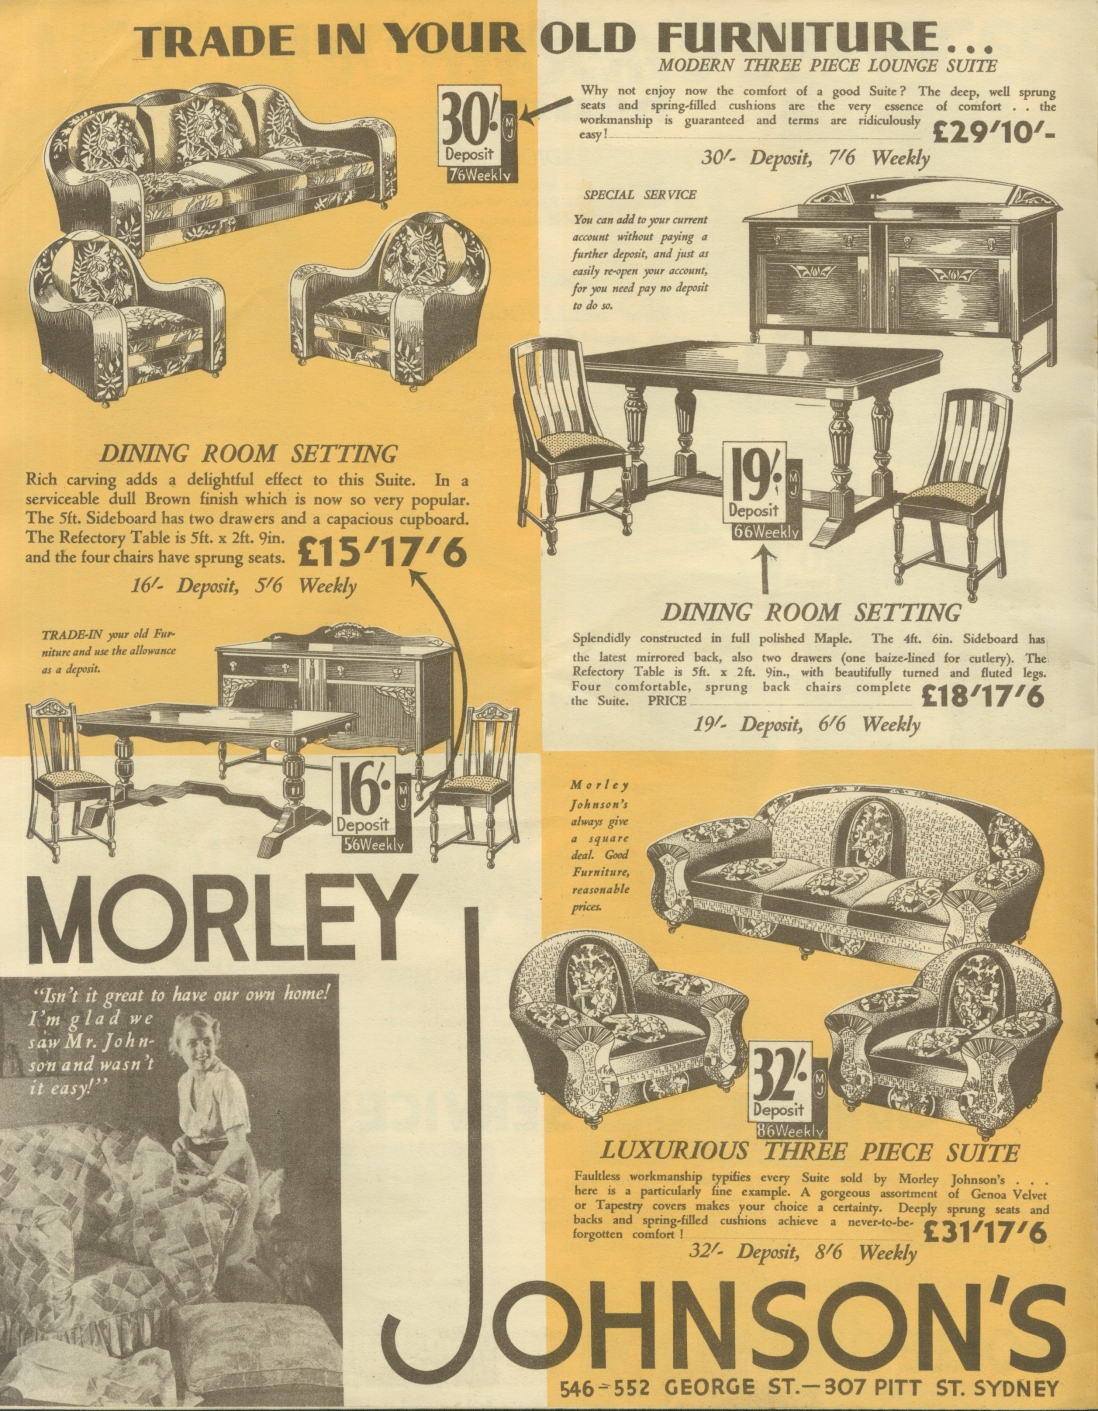 Trade in your old furniture